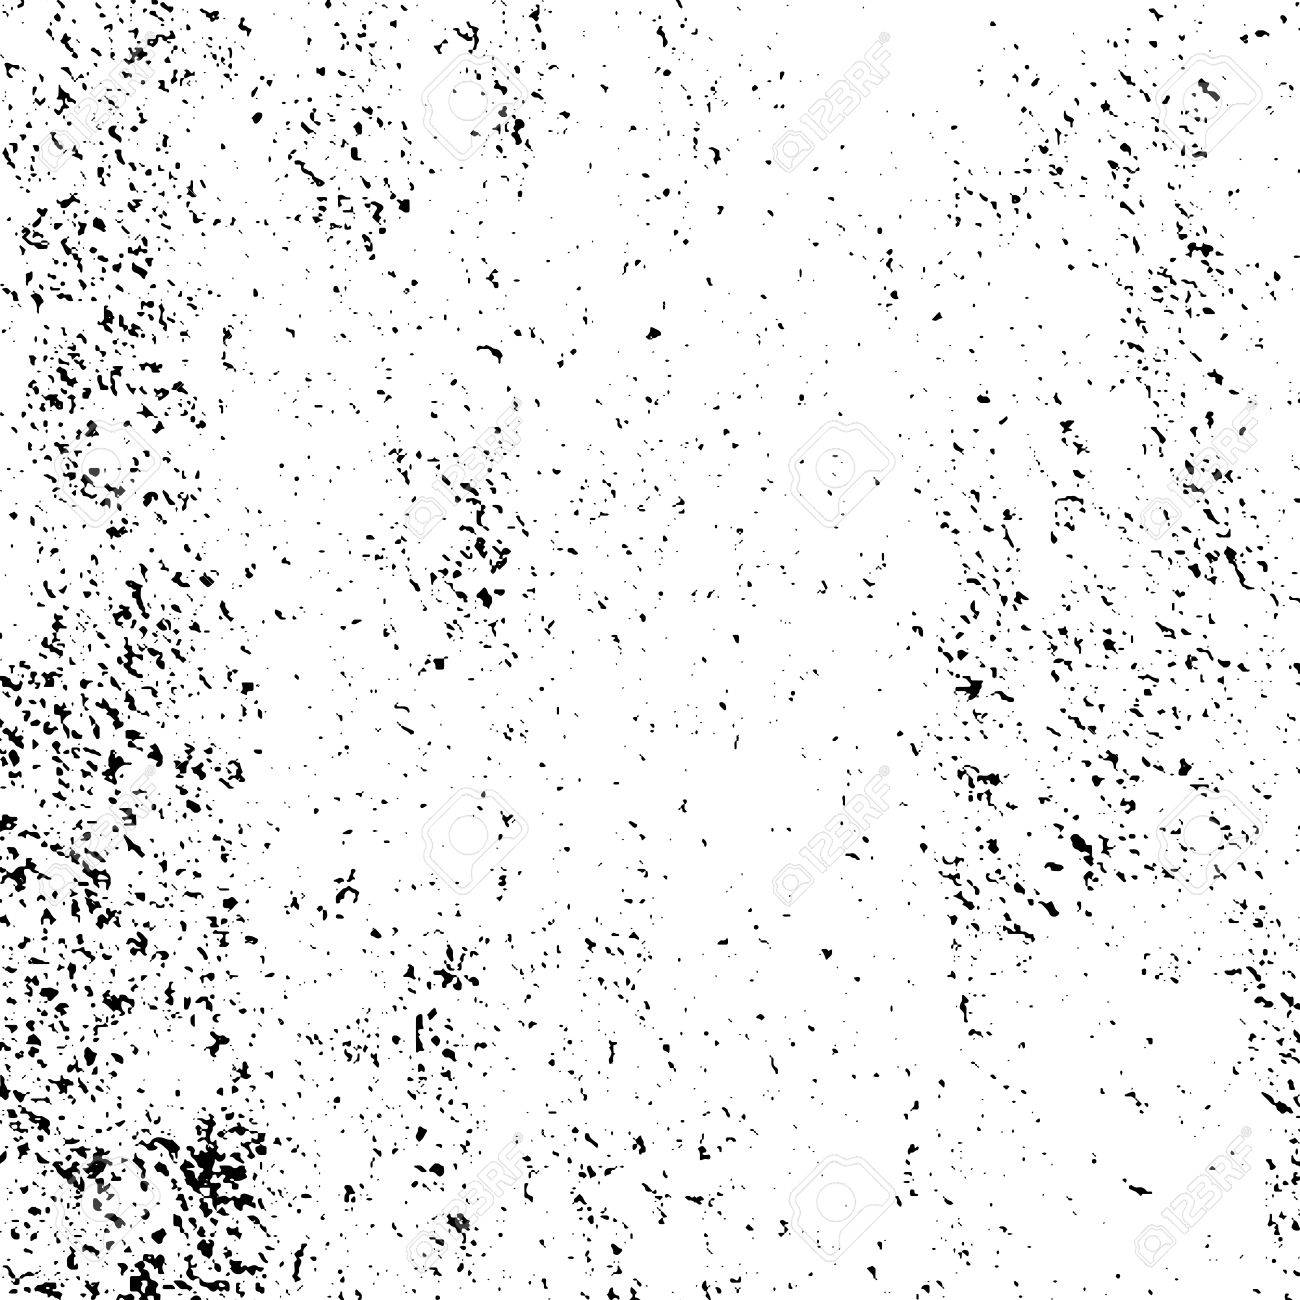 distressed texture distressed background grunge texture grunge rh 123rf com grunge texture vector free grunge texture vector cdr